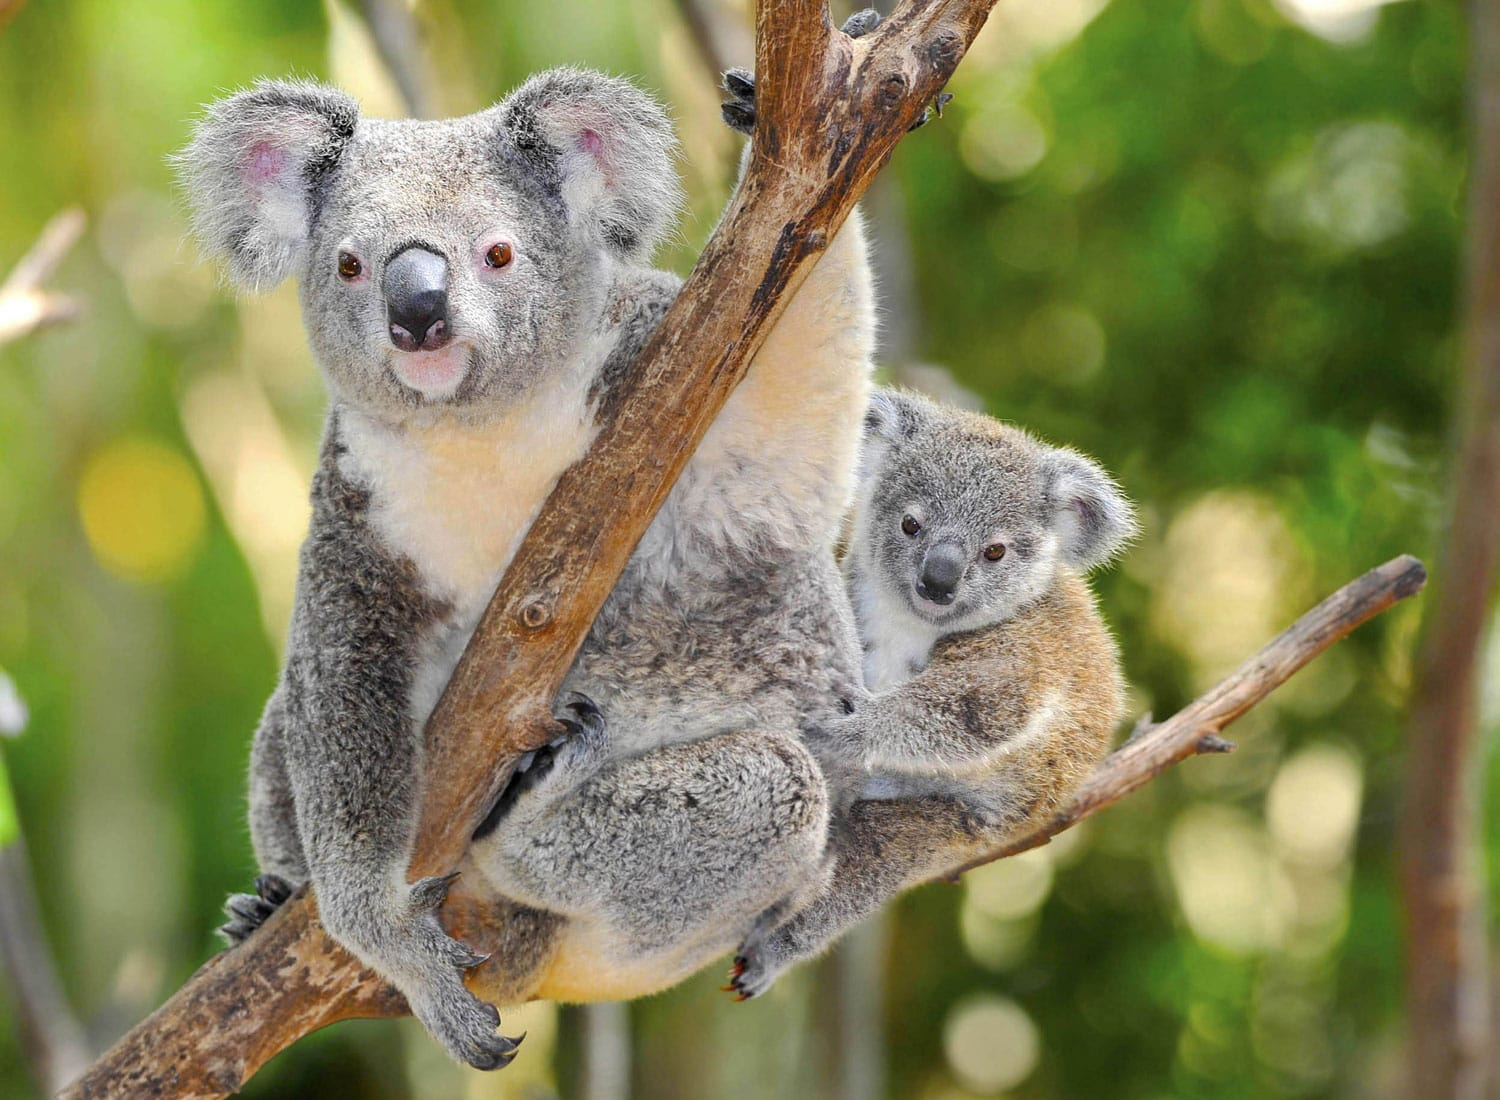 Australian Koala Bear with her baby in eucalyptus tree ,coffs harbor, Sydney, NSW, Australia